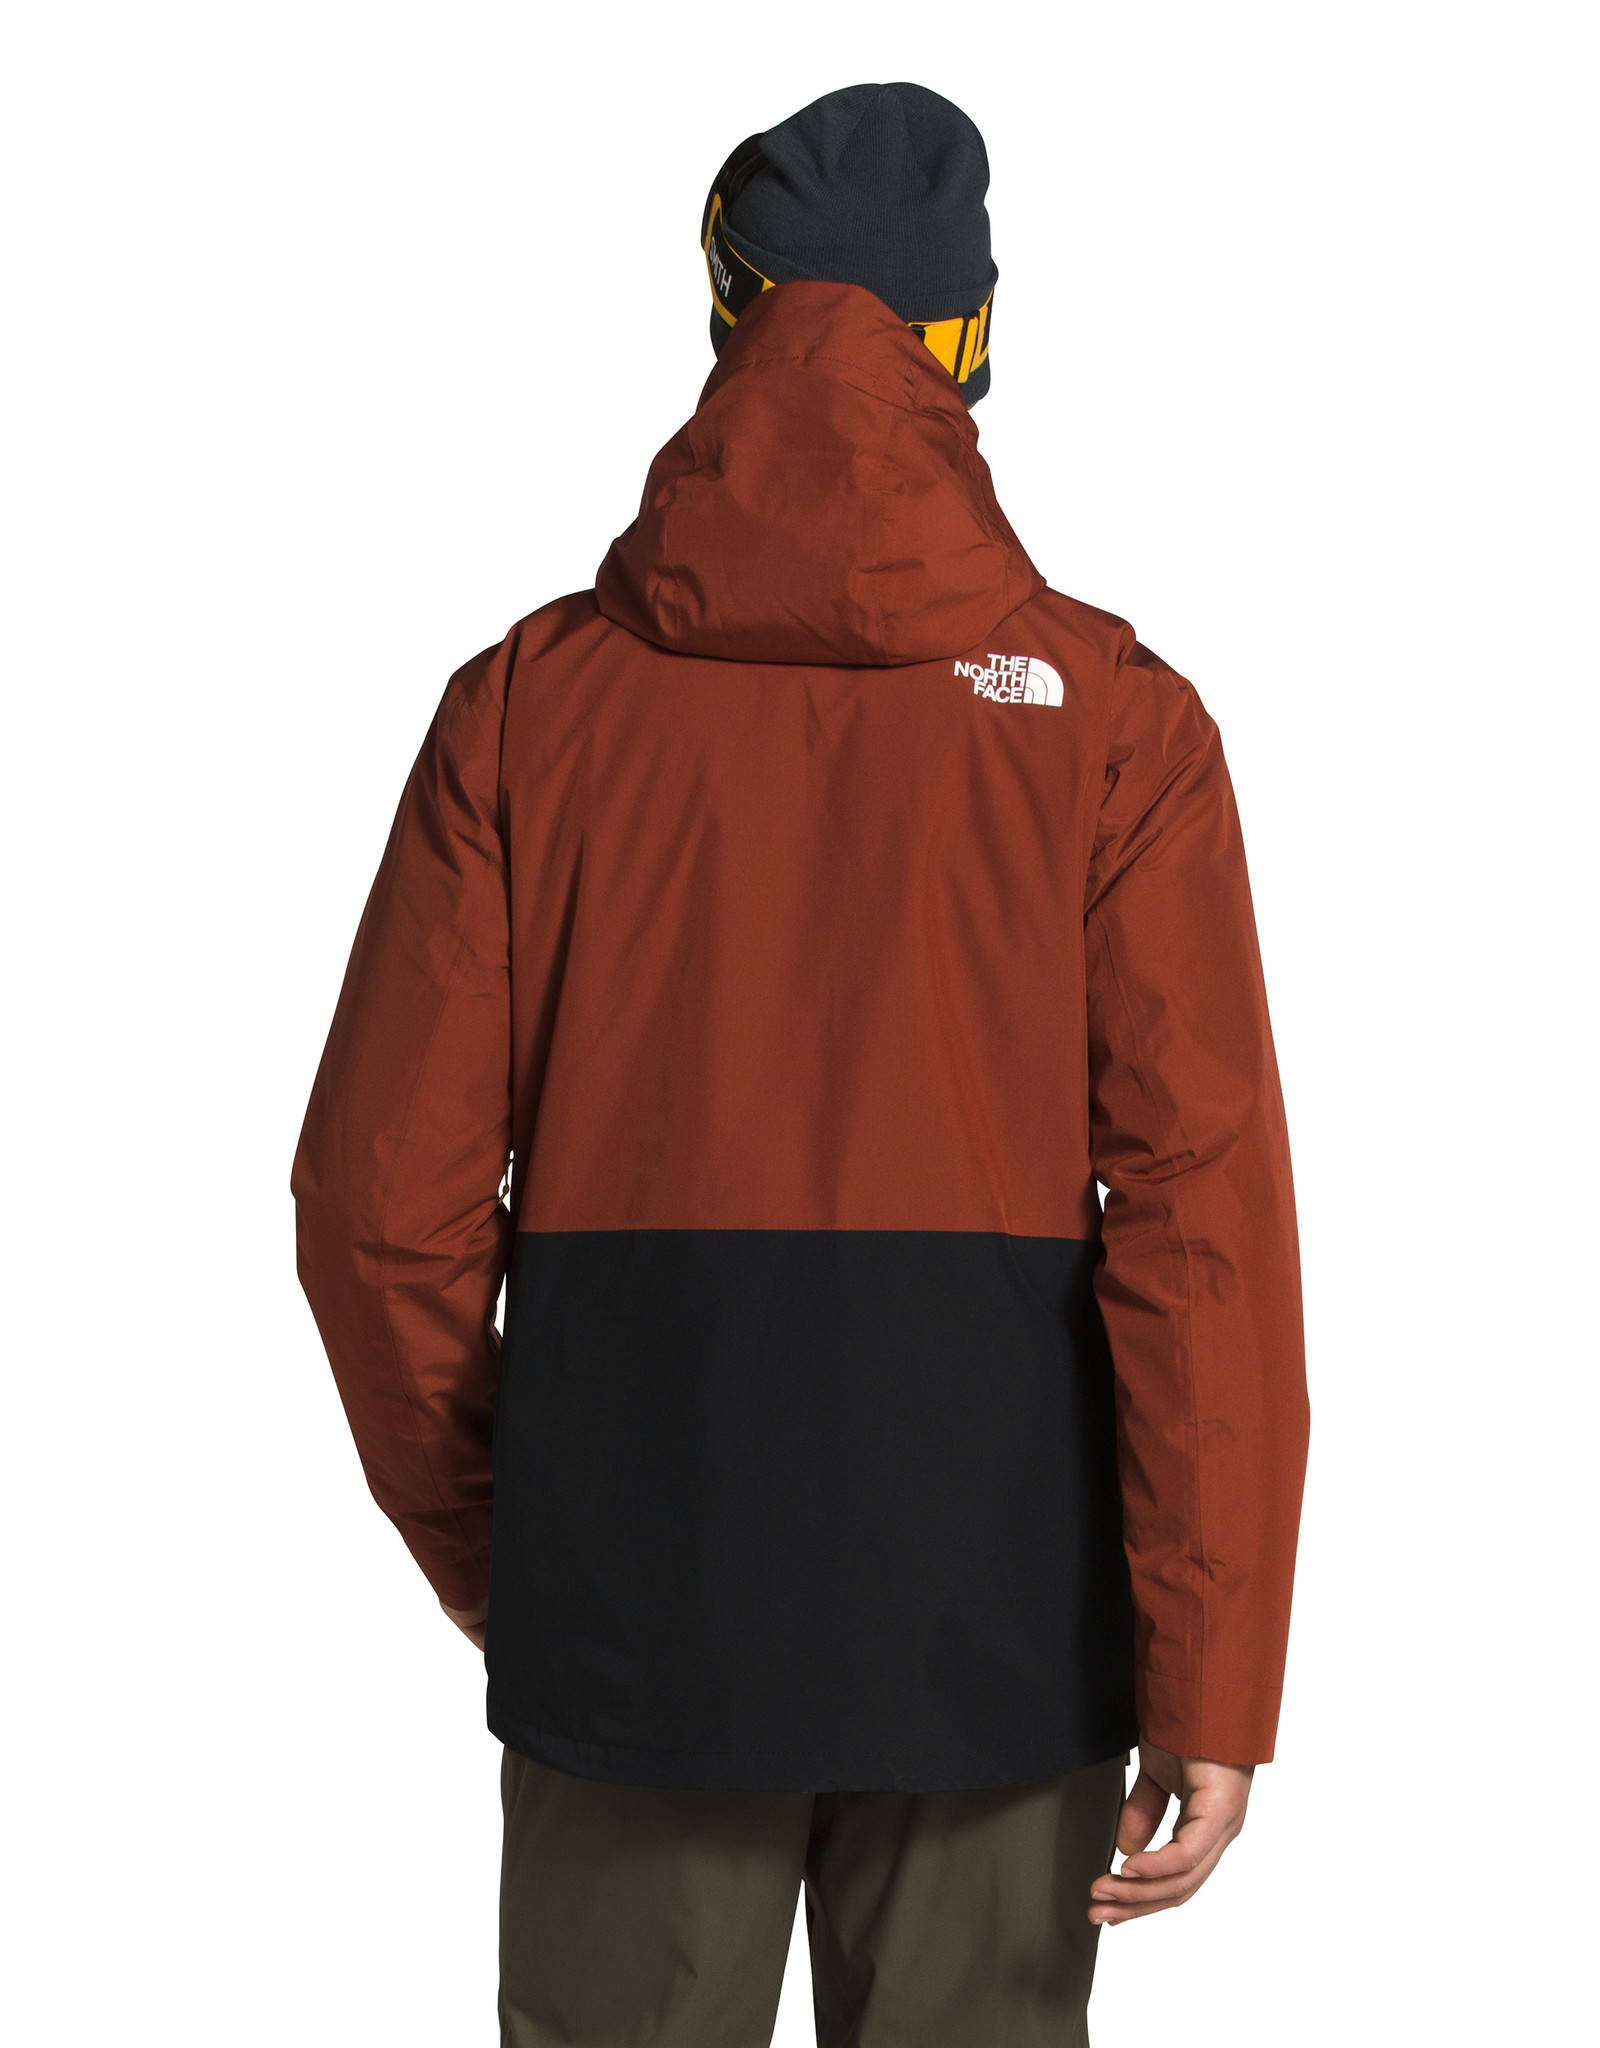 The North Face The North Face Men's Clement Triclimate Jacket -W2020